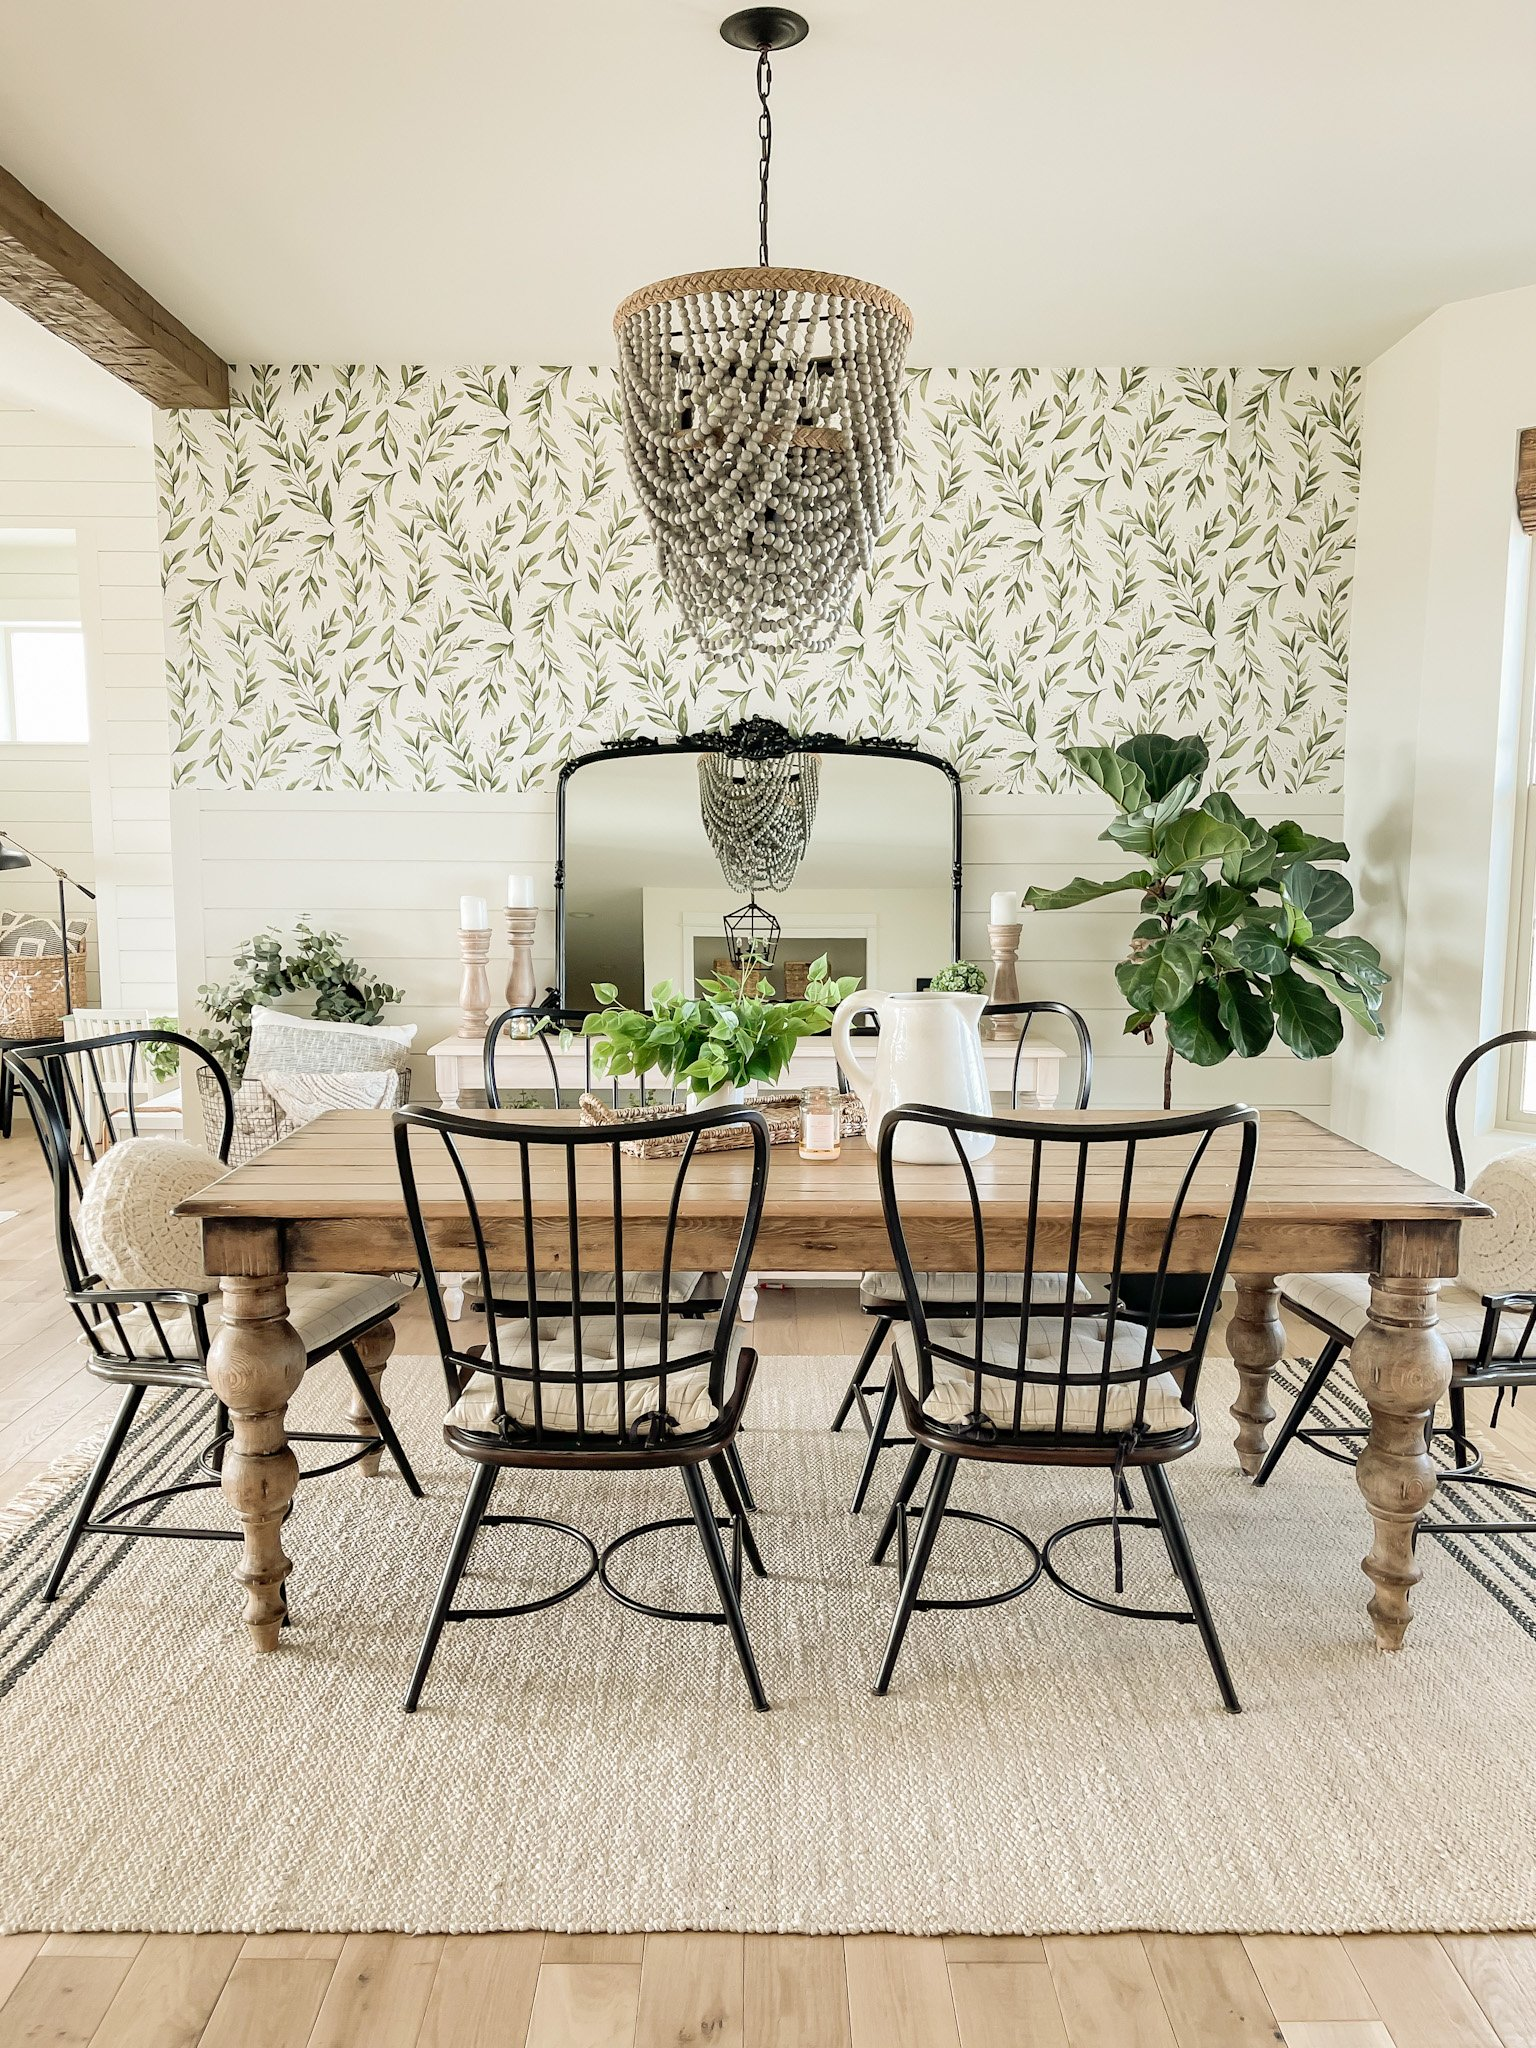 Target Decor Furniture Favorites In My Home Sarah Joy